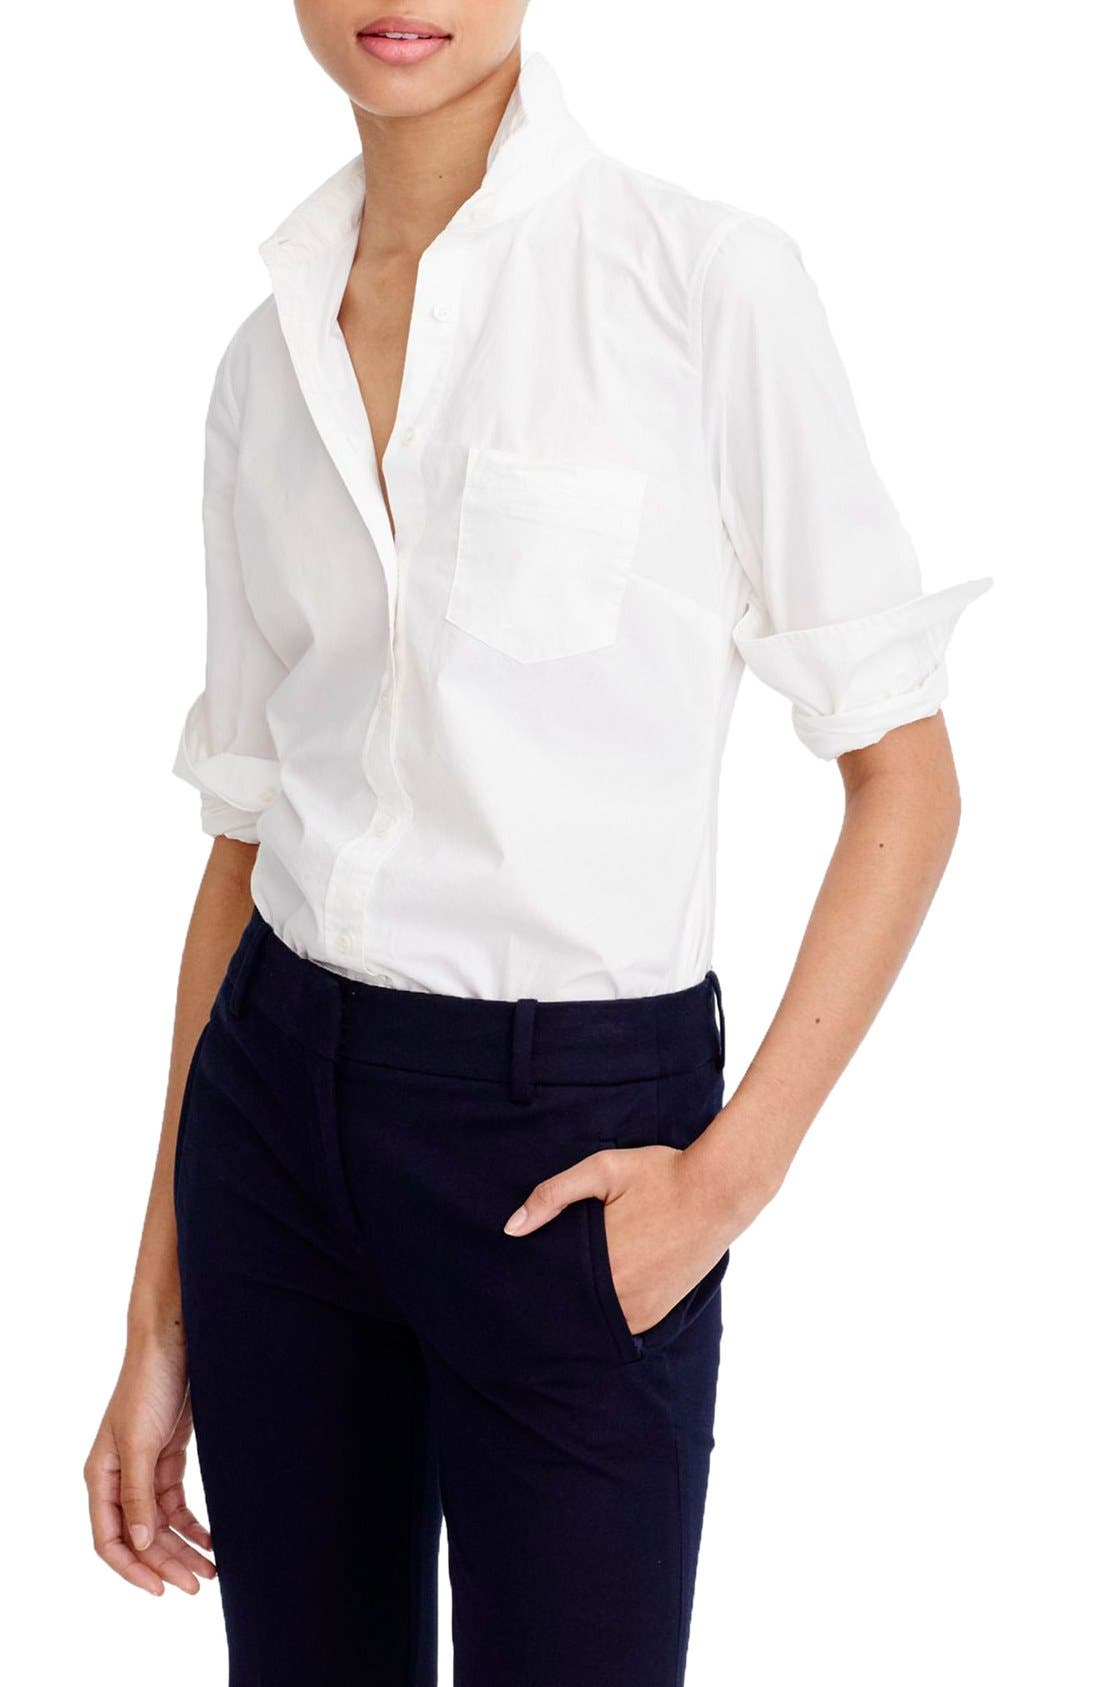 Alternate Image 1 Selected - J.Crew New Perfect Cotton Poplin Shirt (Regular & Petite)